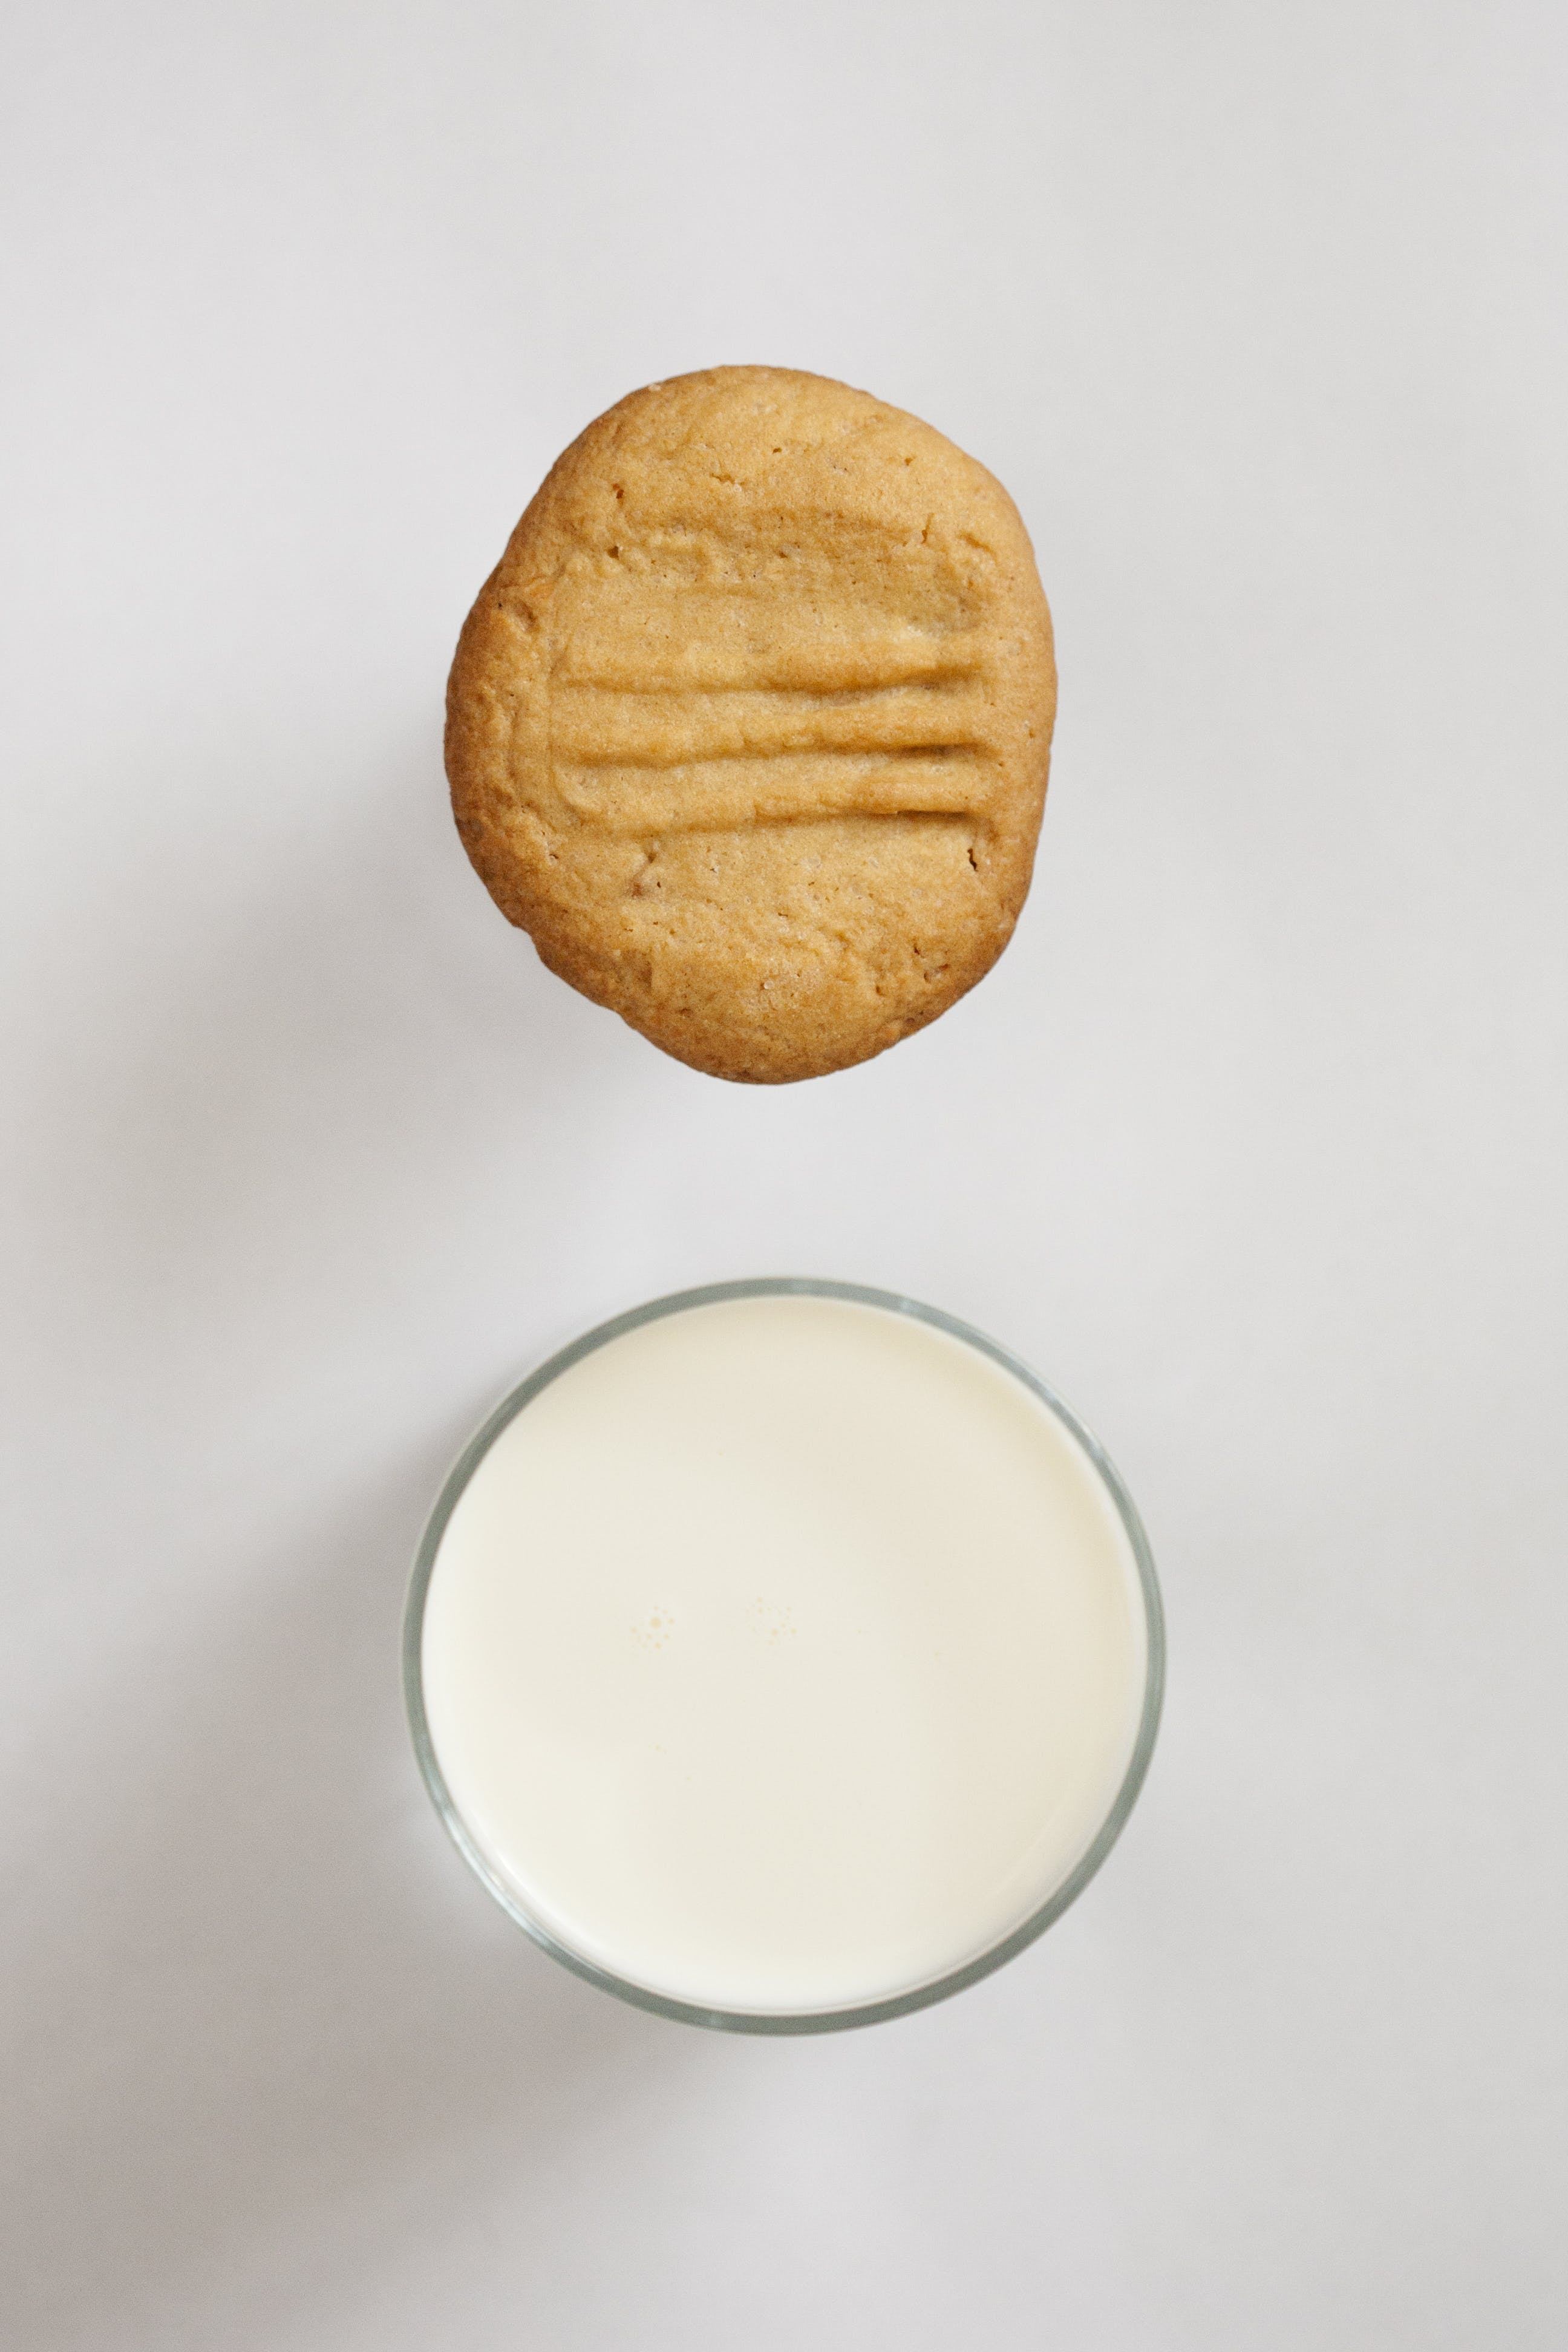 Baked Cookie Near White Liquid in Cup